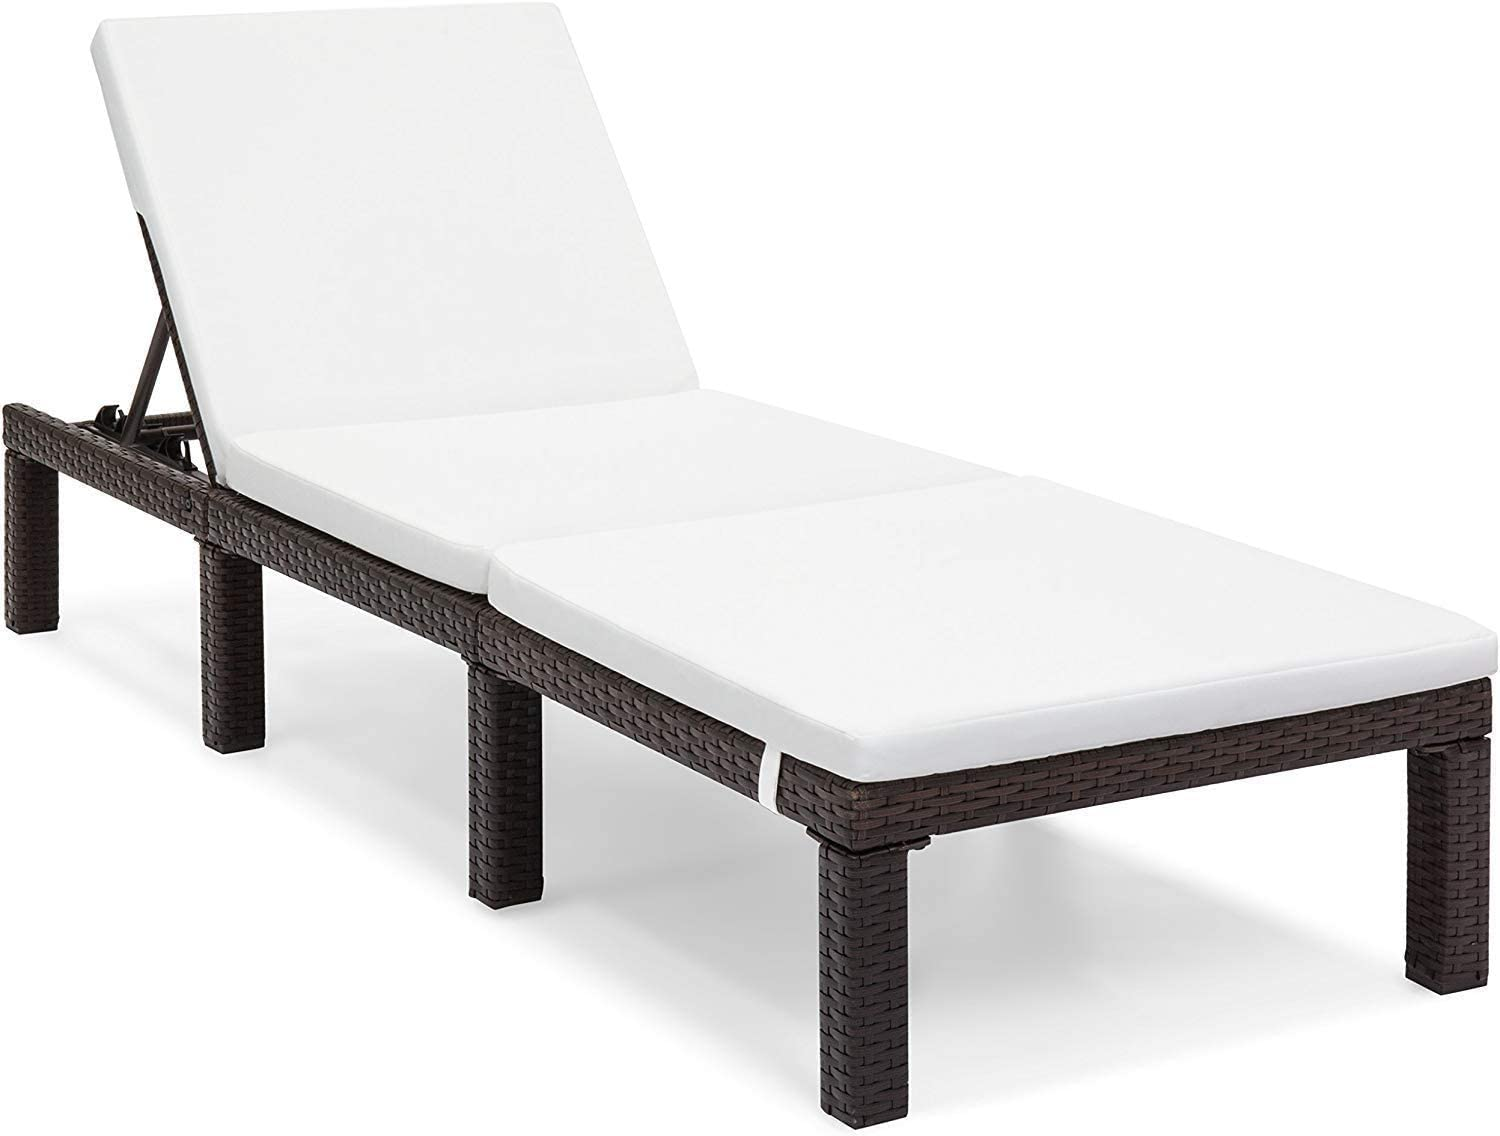 OAKVILLE FURNITURE 61702 Patio Outdoor Adjustable Pool Chaise Lounge Chair, Brown Wicker Beige Cushion